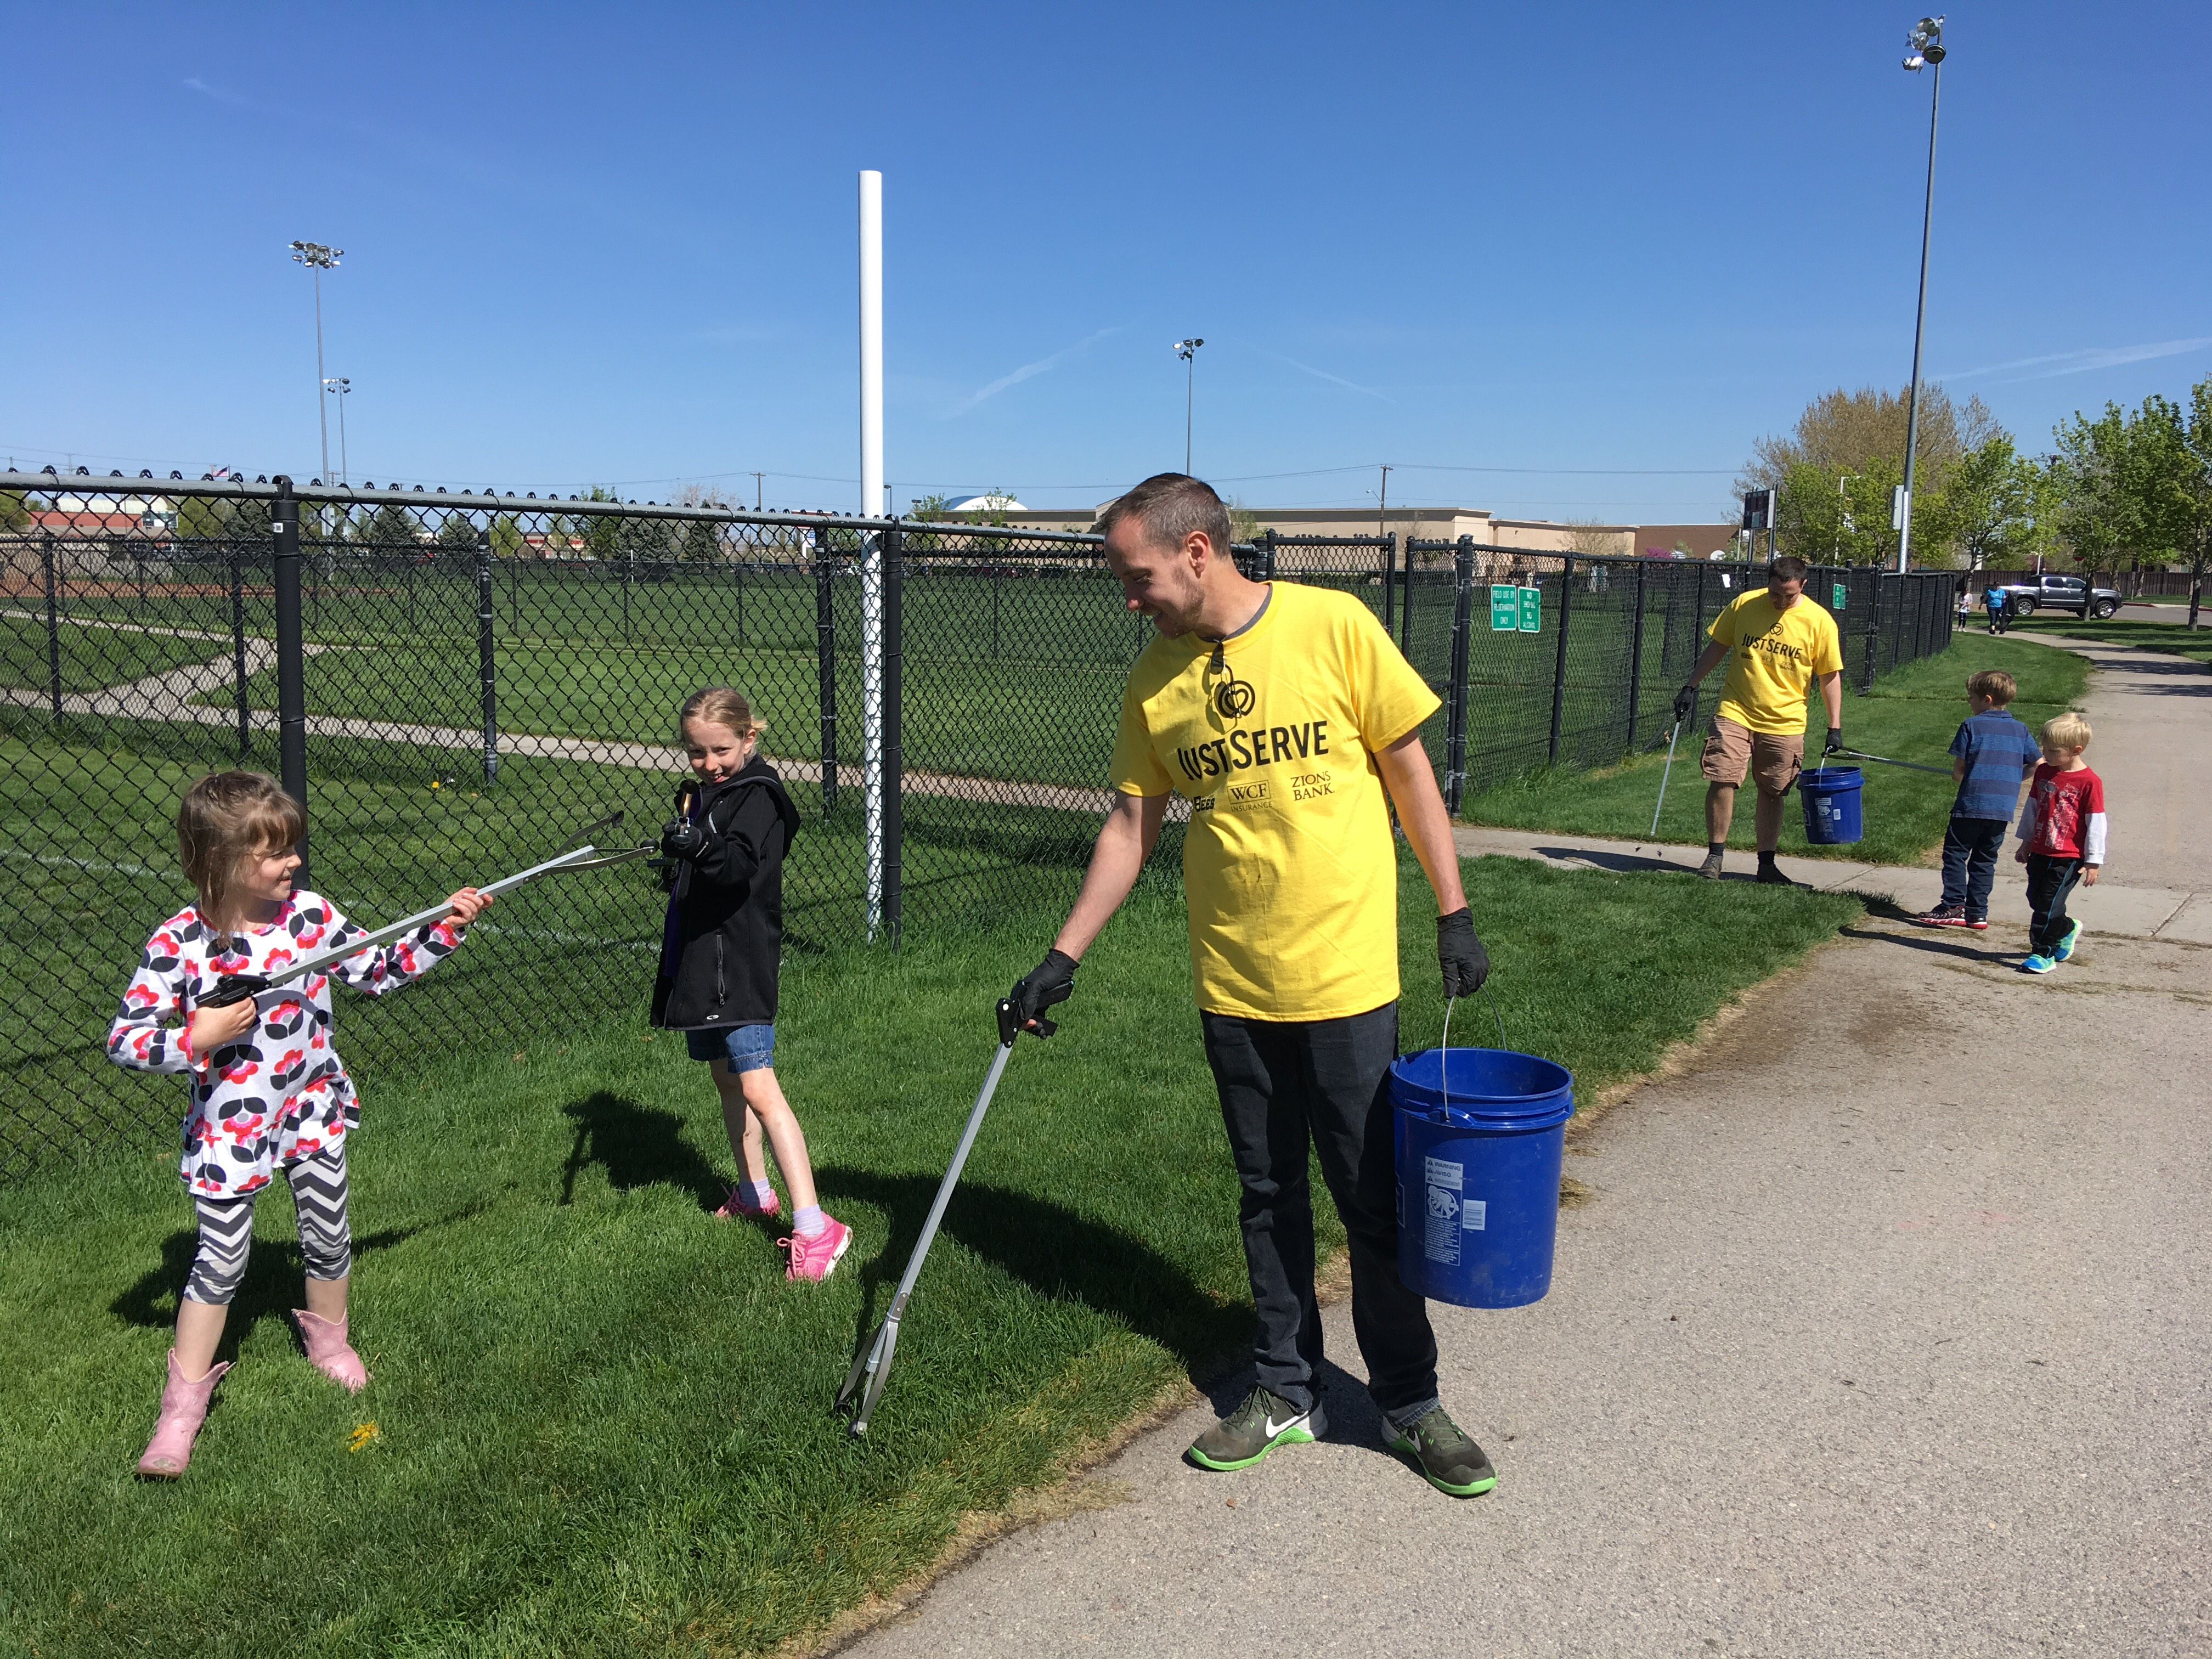 Families work together at a park in the Salt Lake area as part of the Salt Lake Bees/JustServe day of service.